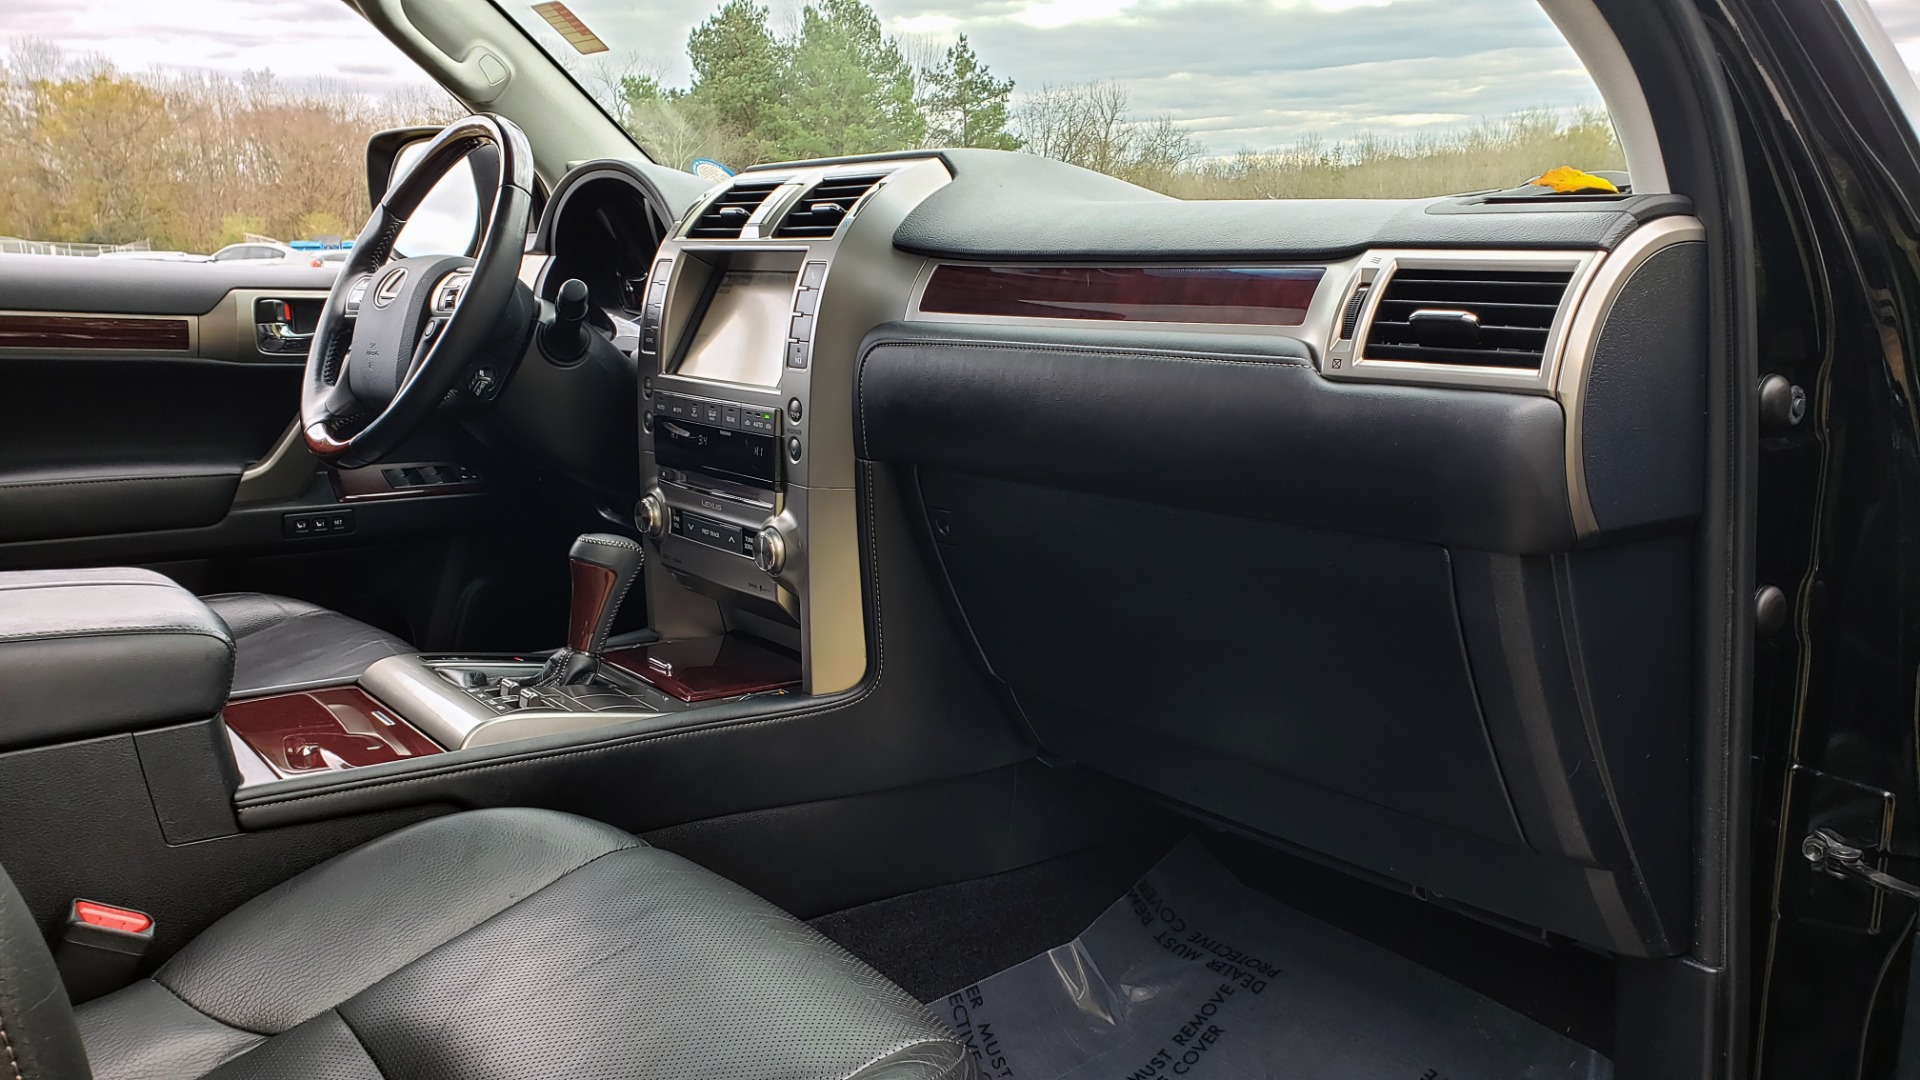 Used 2017 Lexus GX 460 PREMIUM / 4WD / NAV / SUNROOF / 3-ROW / BSM / REARVIEW for sale $34,995 at Formula Imports in Charlotte NC 28227 70